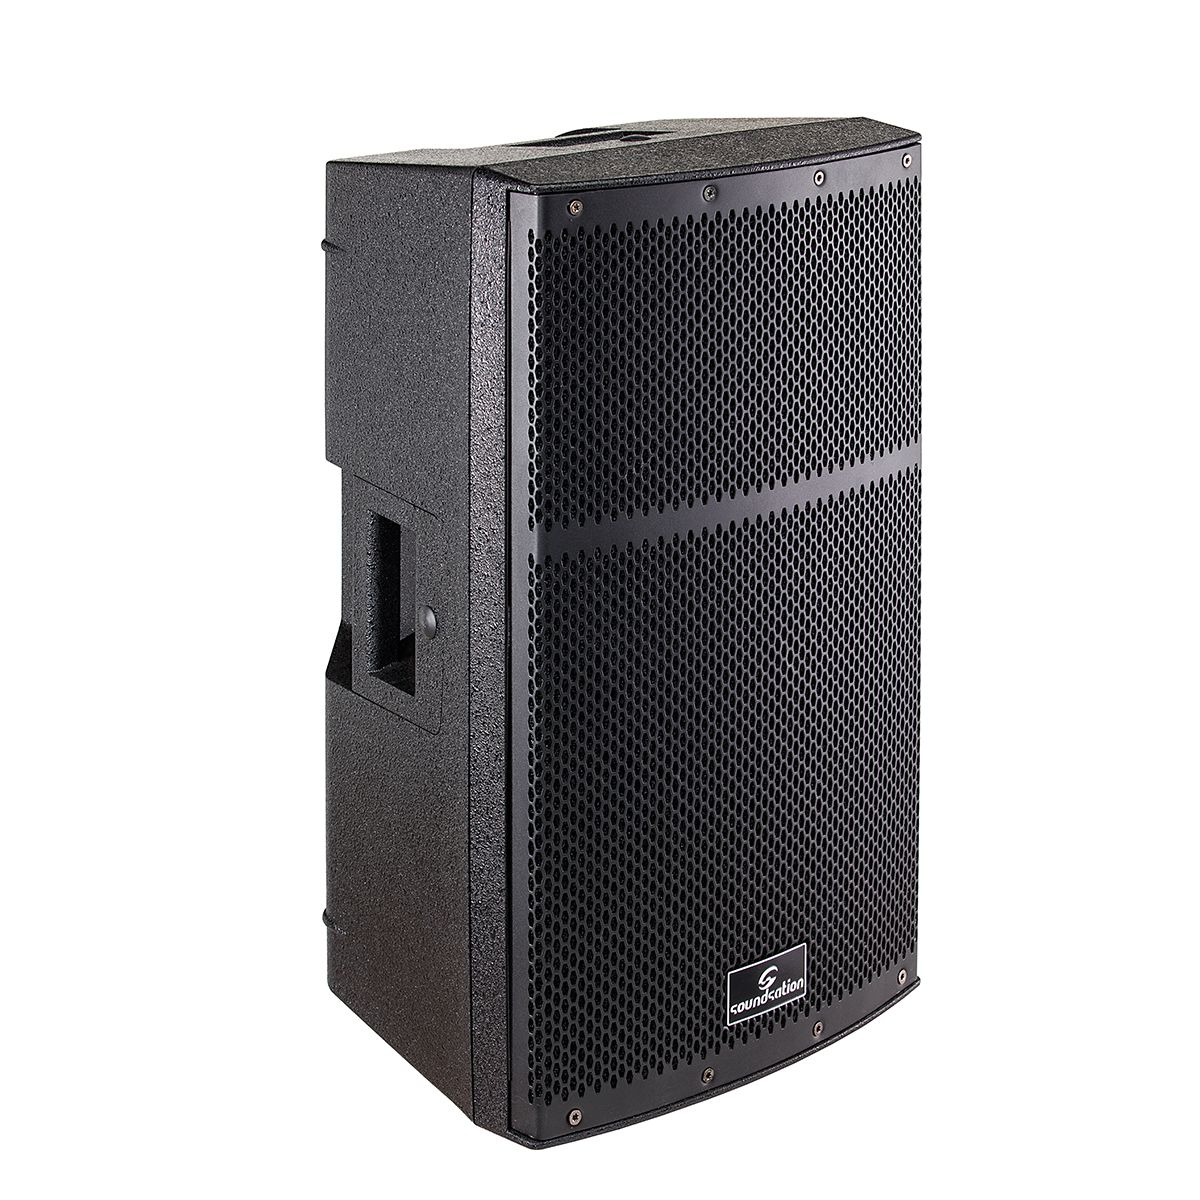 SOUNDSATION HYPER-PRO TOP 15A - 1200 Watt